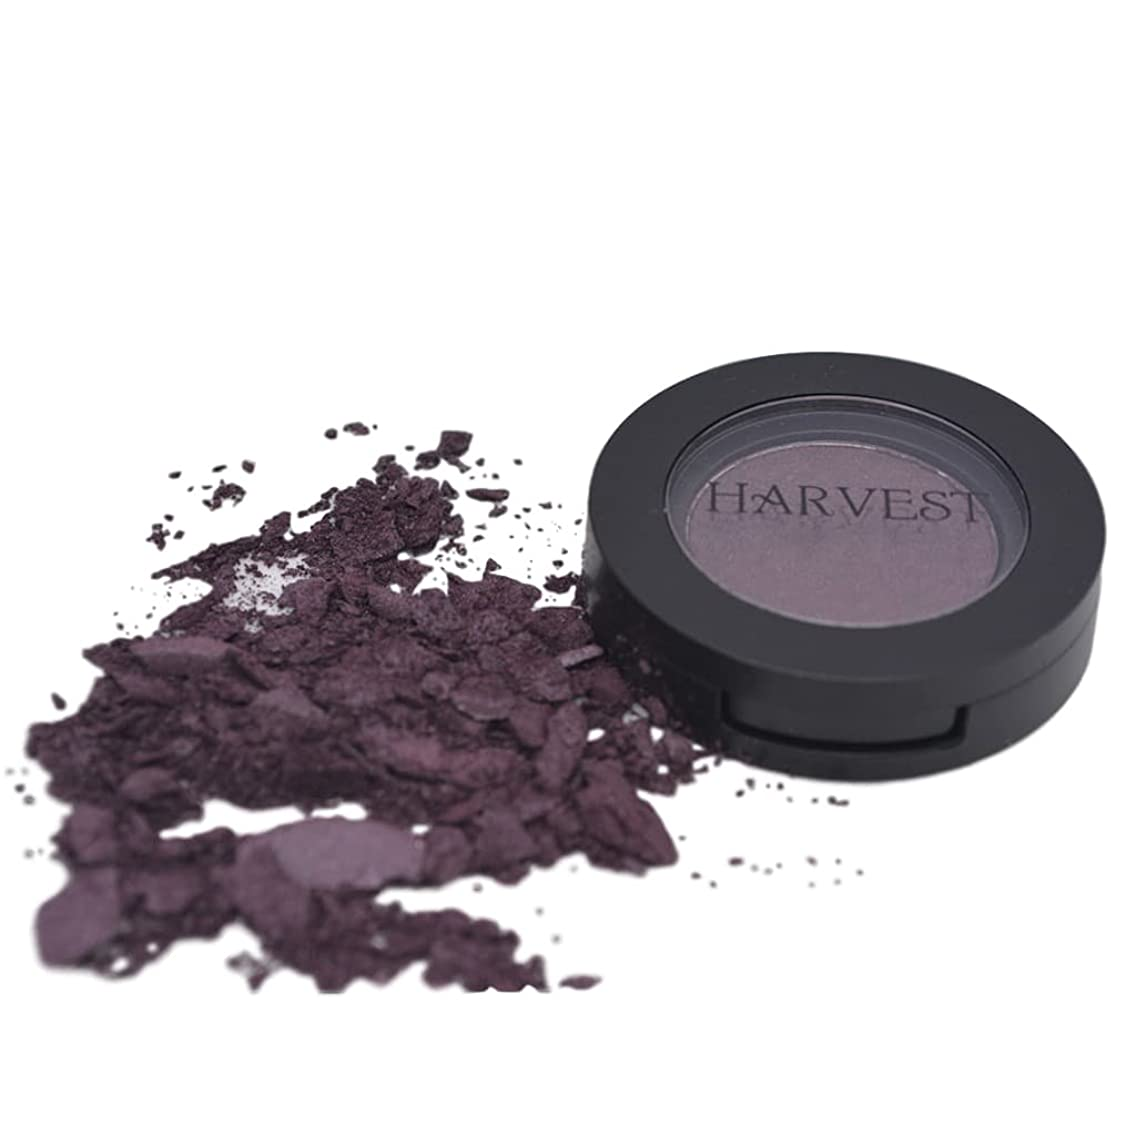 Harvest Natural Beauty - Organic Eyeshadow - 100% Natural and Certified Organic - Non-Toxic, Vegan and Cruelty Free (Smokin' Plum)